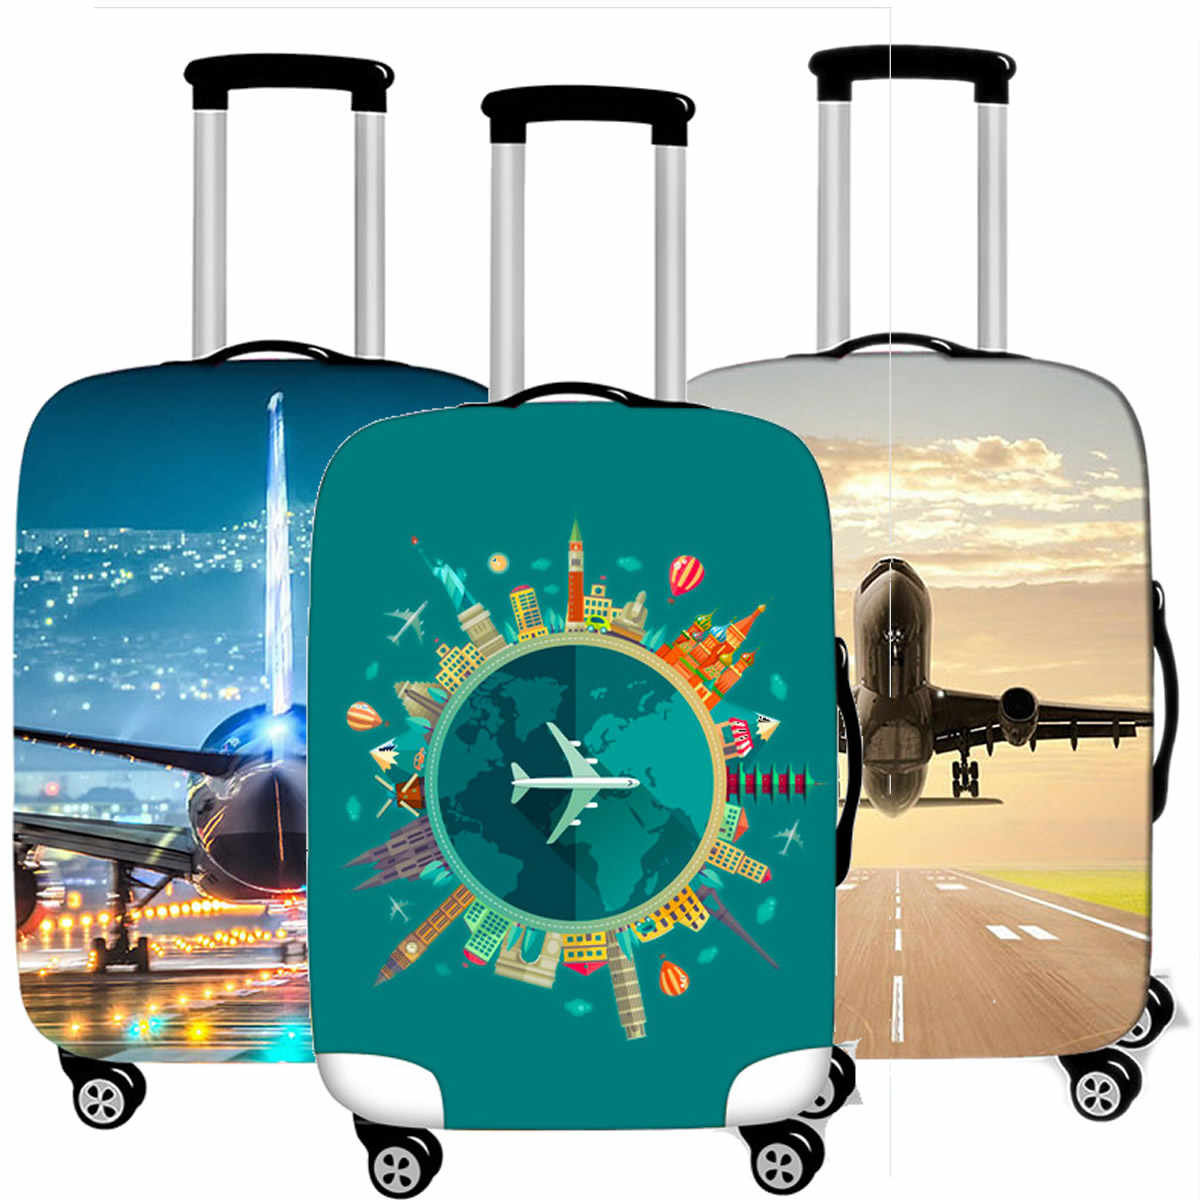 Creative Aircraft 3D Luggage Cover Protective Case Waterproof Thicken Travel Suitcase Cover Apply 18 - 32 Inches XL Accessorie